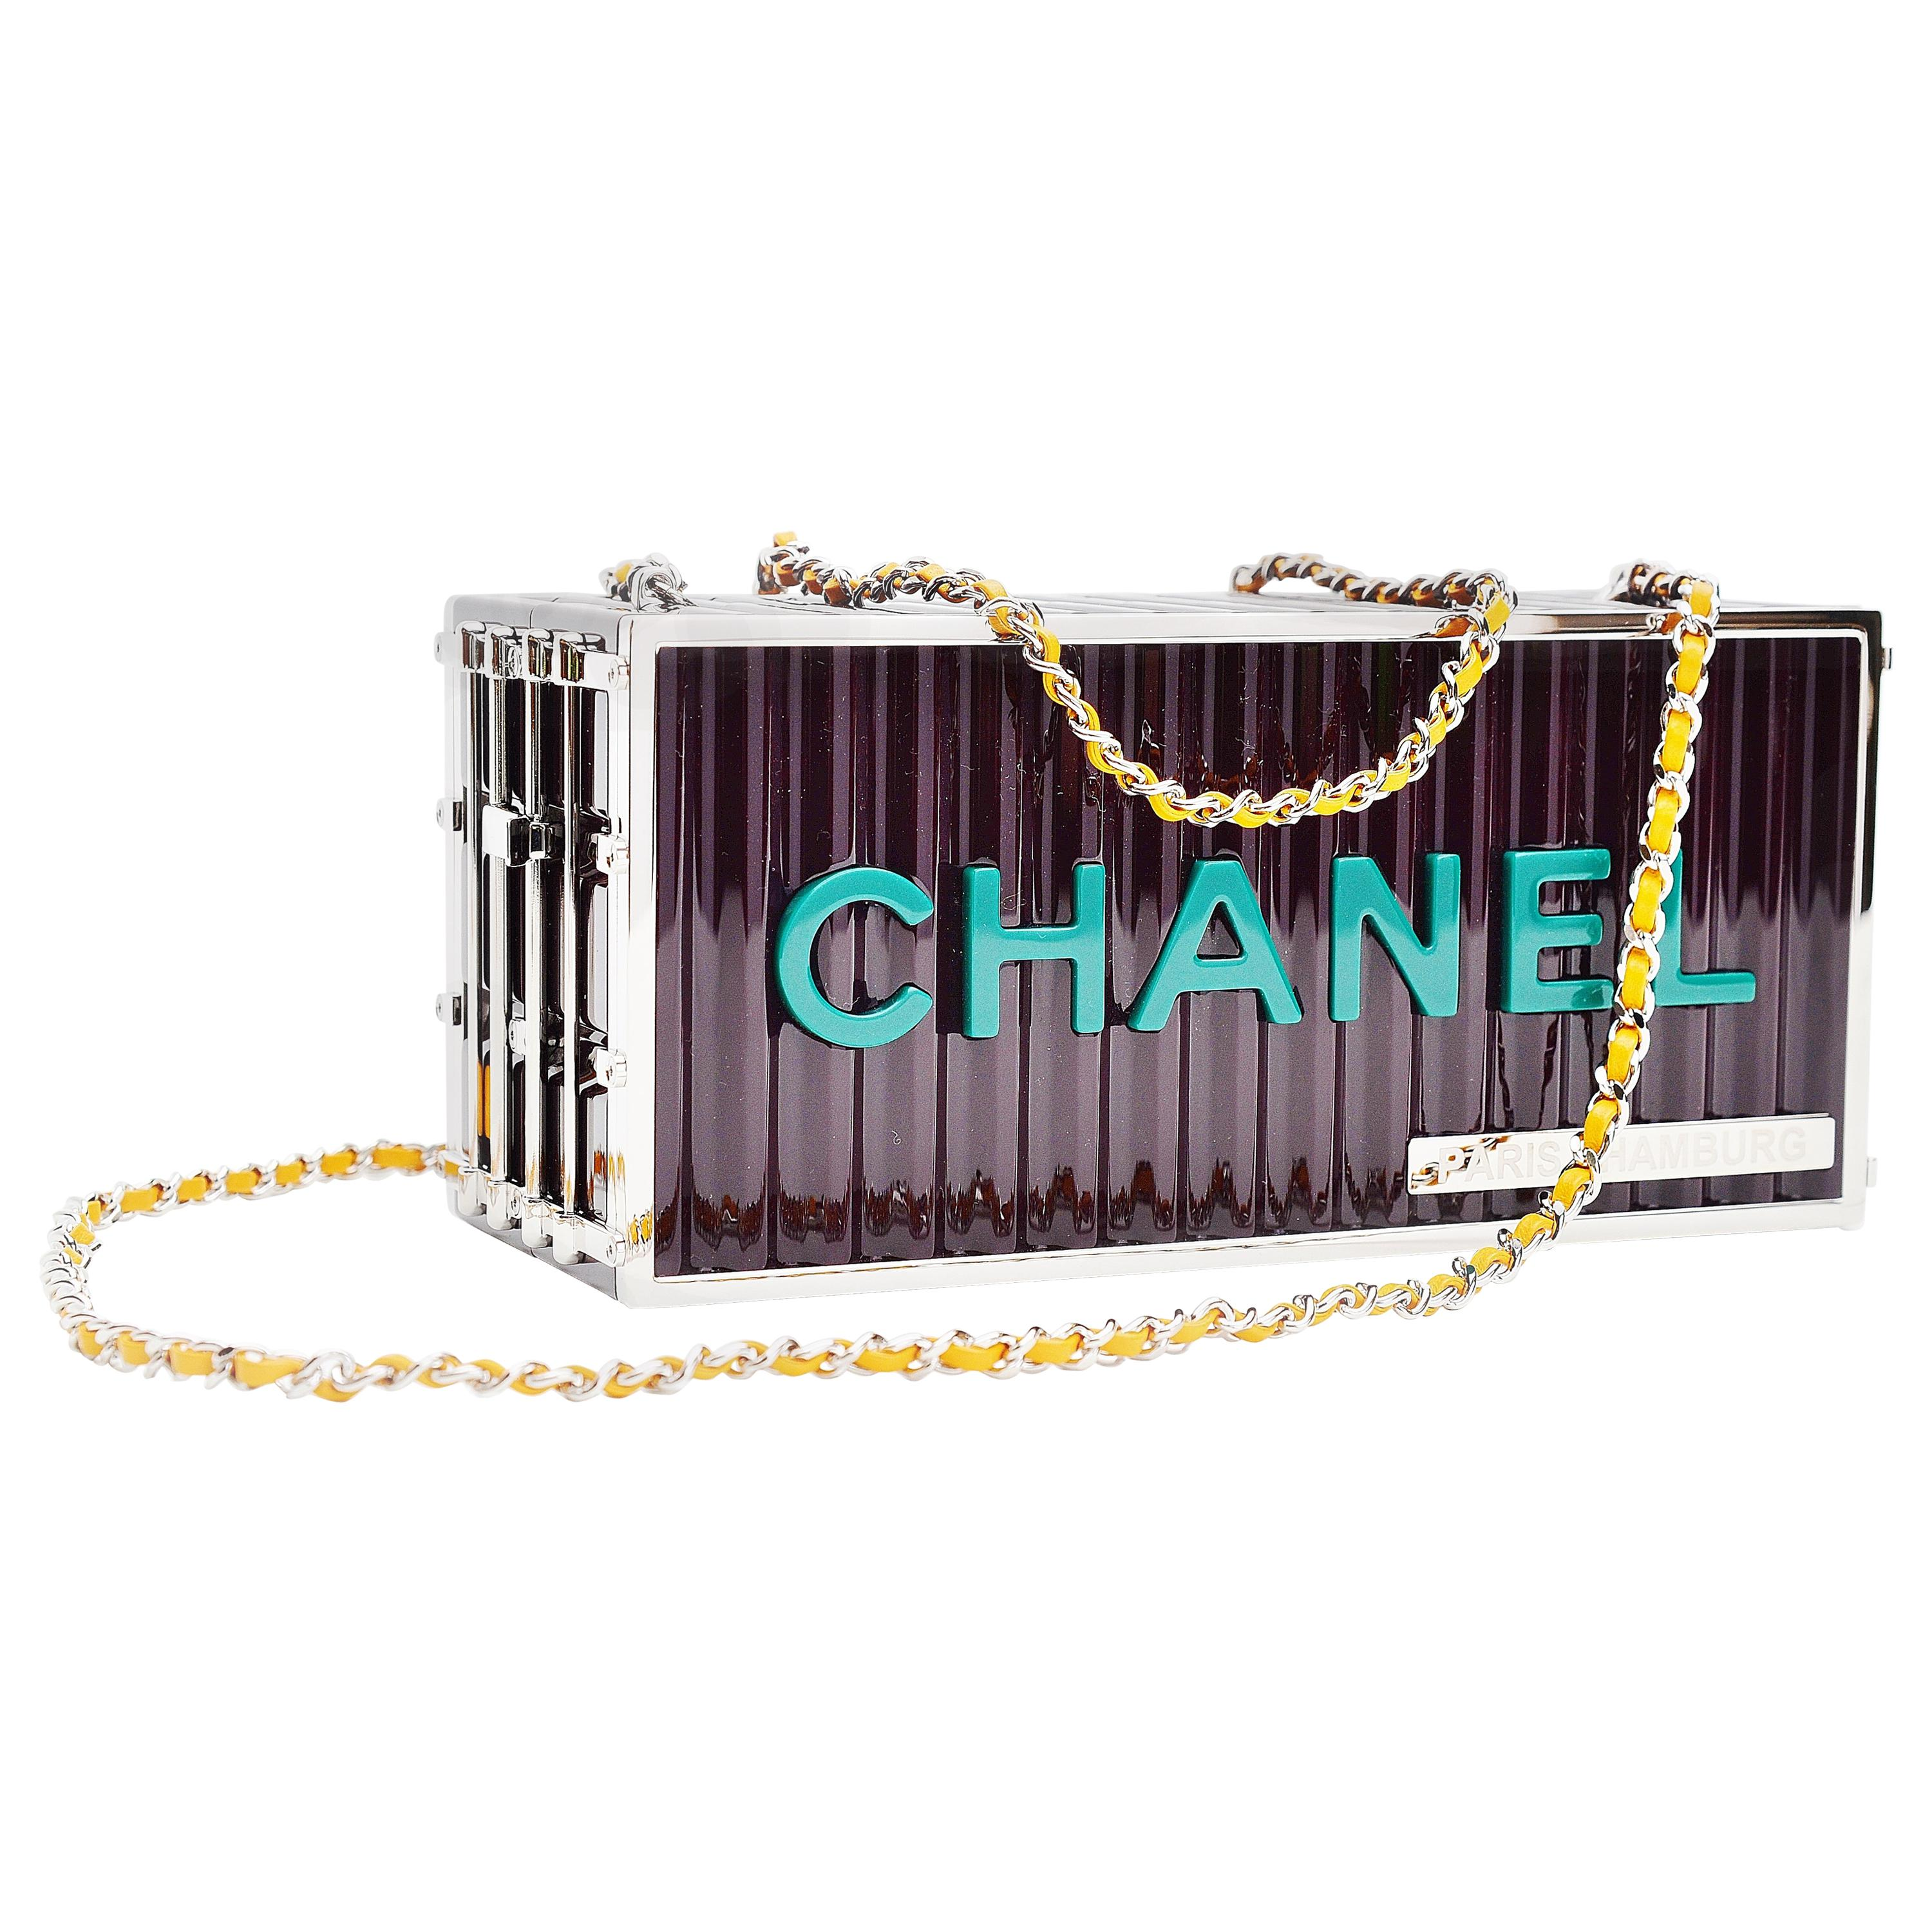 Chanel Runway Container Clutch / Shoulder Bag Karl Lagerfeld NEW